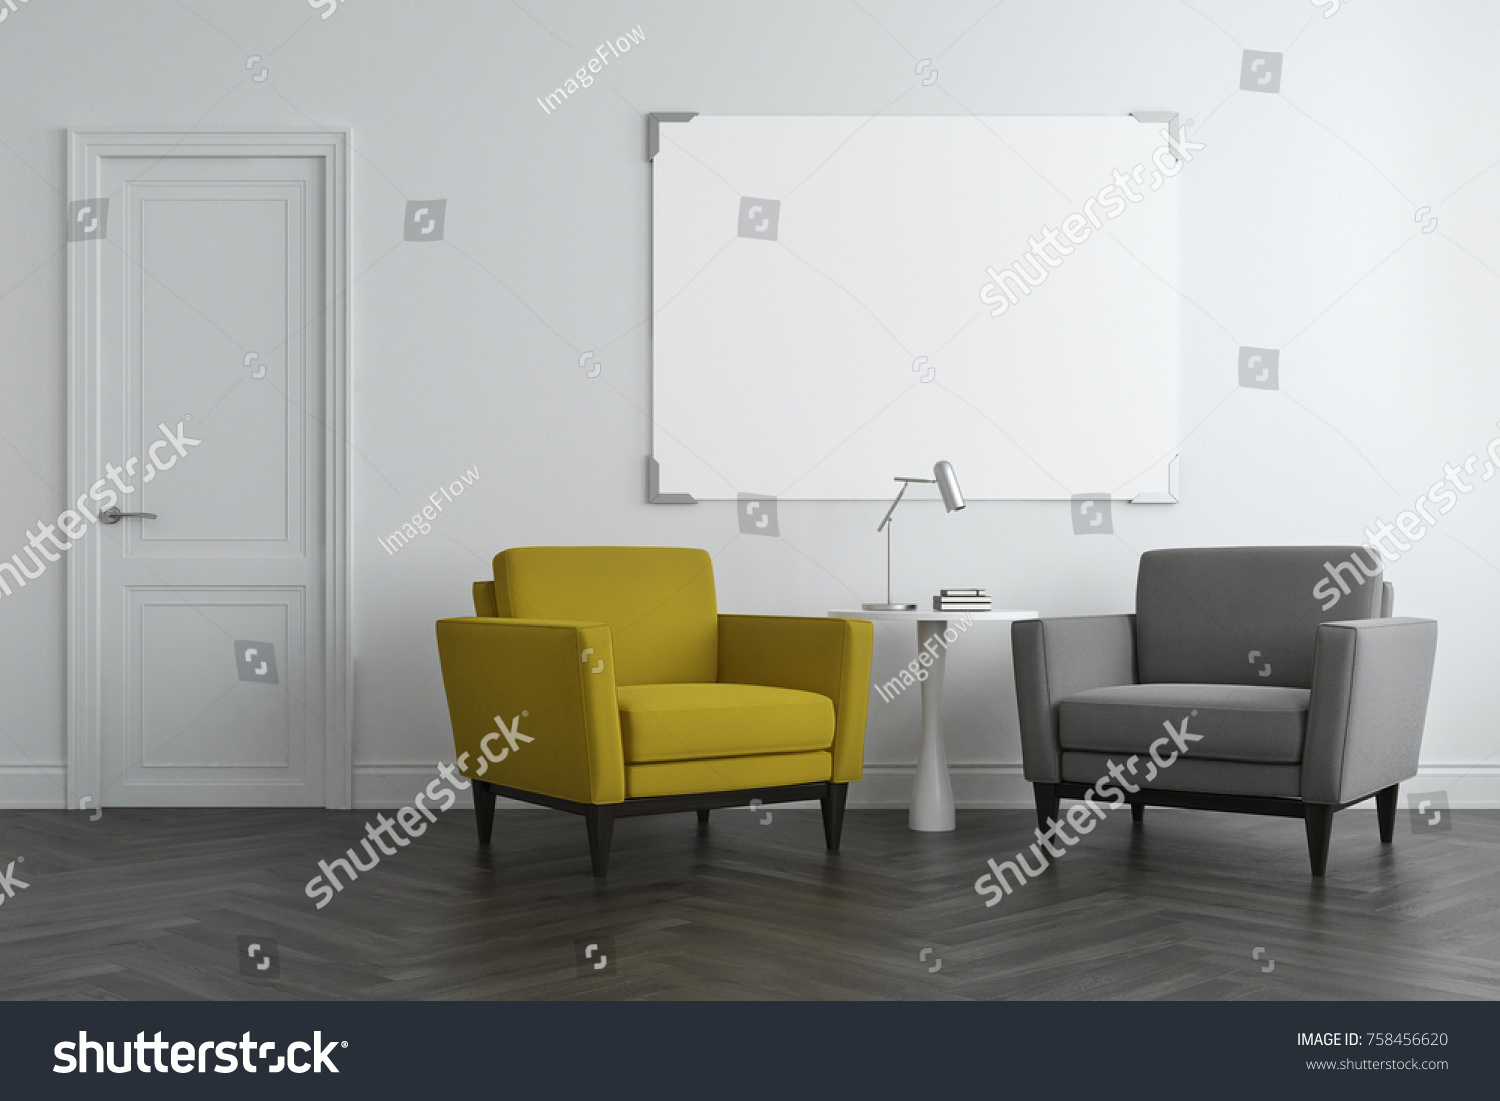 White Living Room Interior Concrete Floor Stock Illustration ...